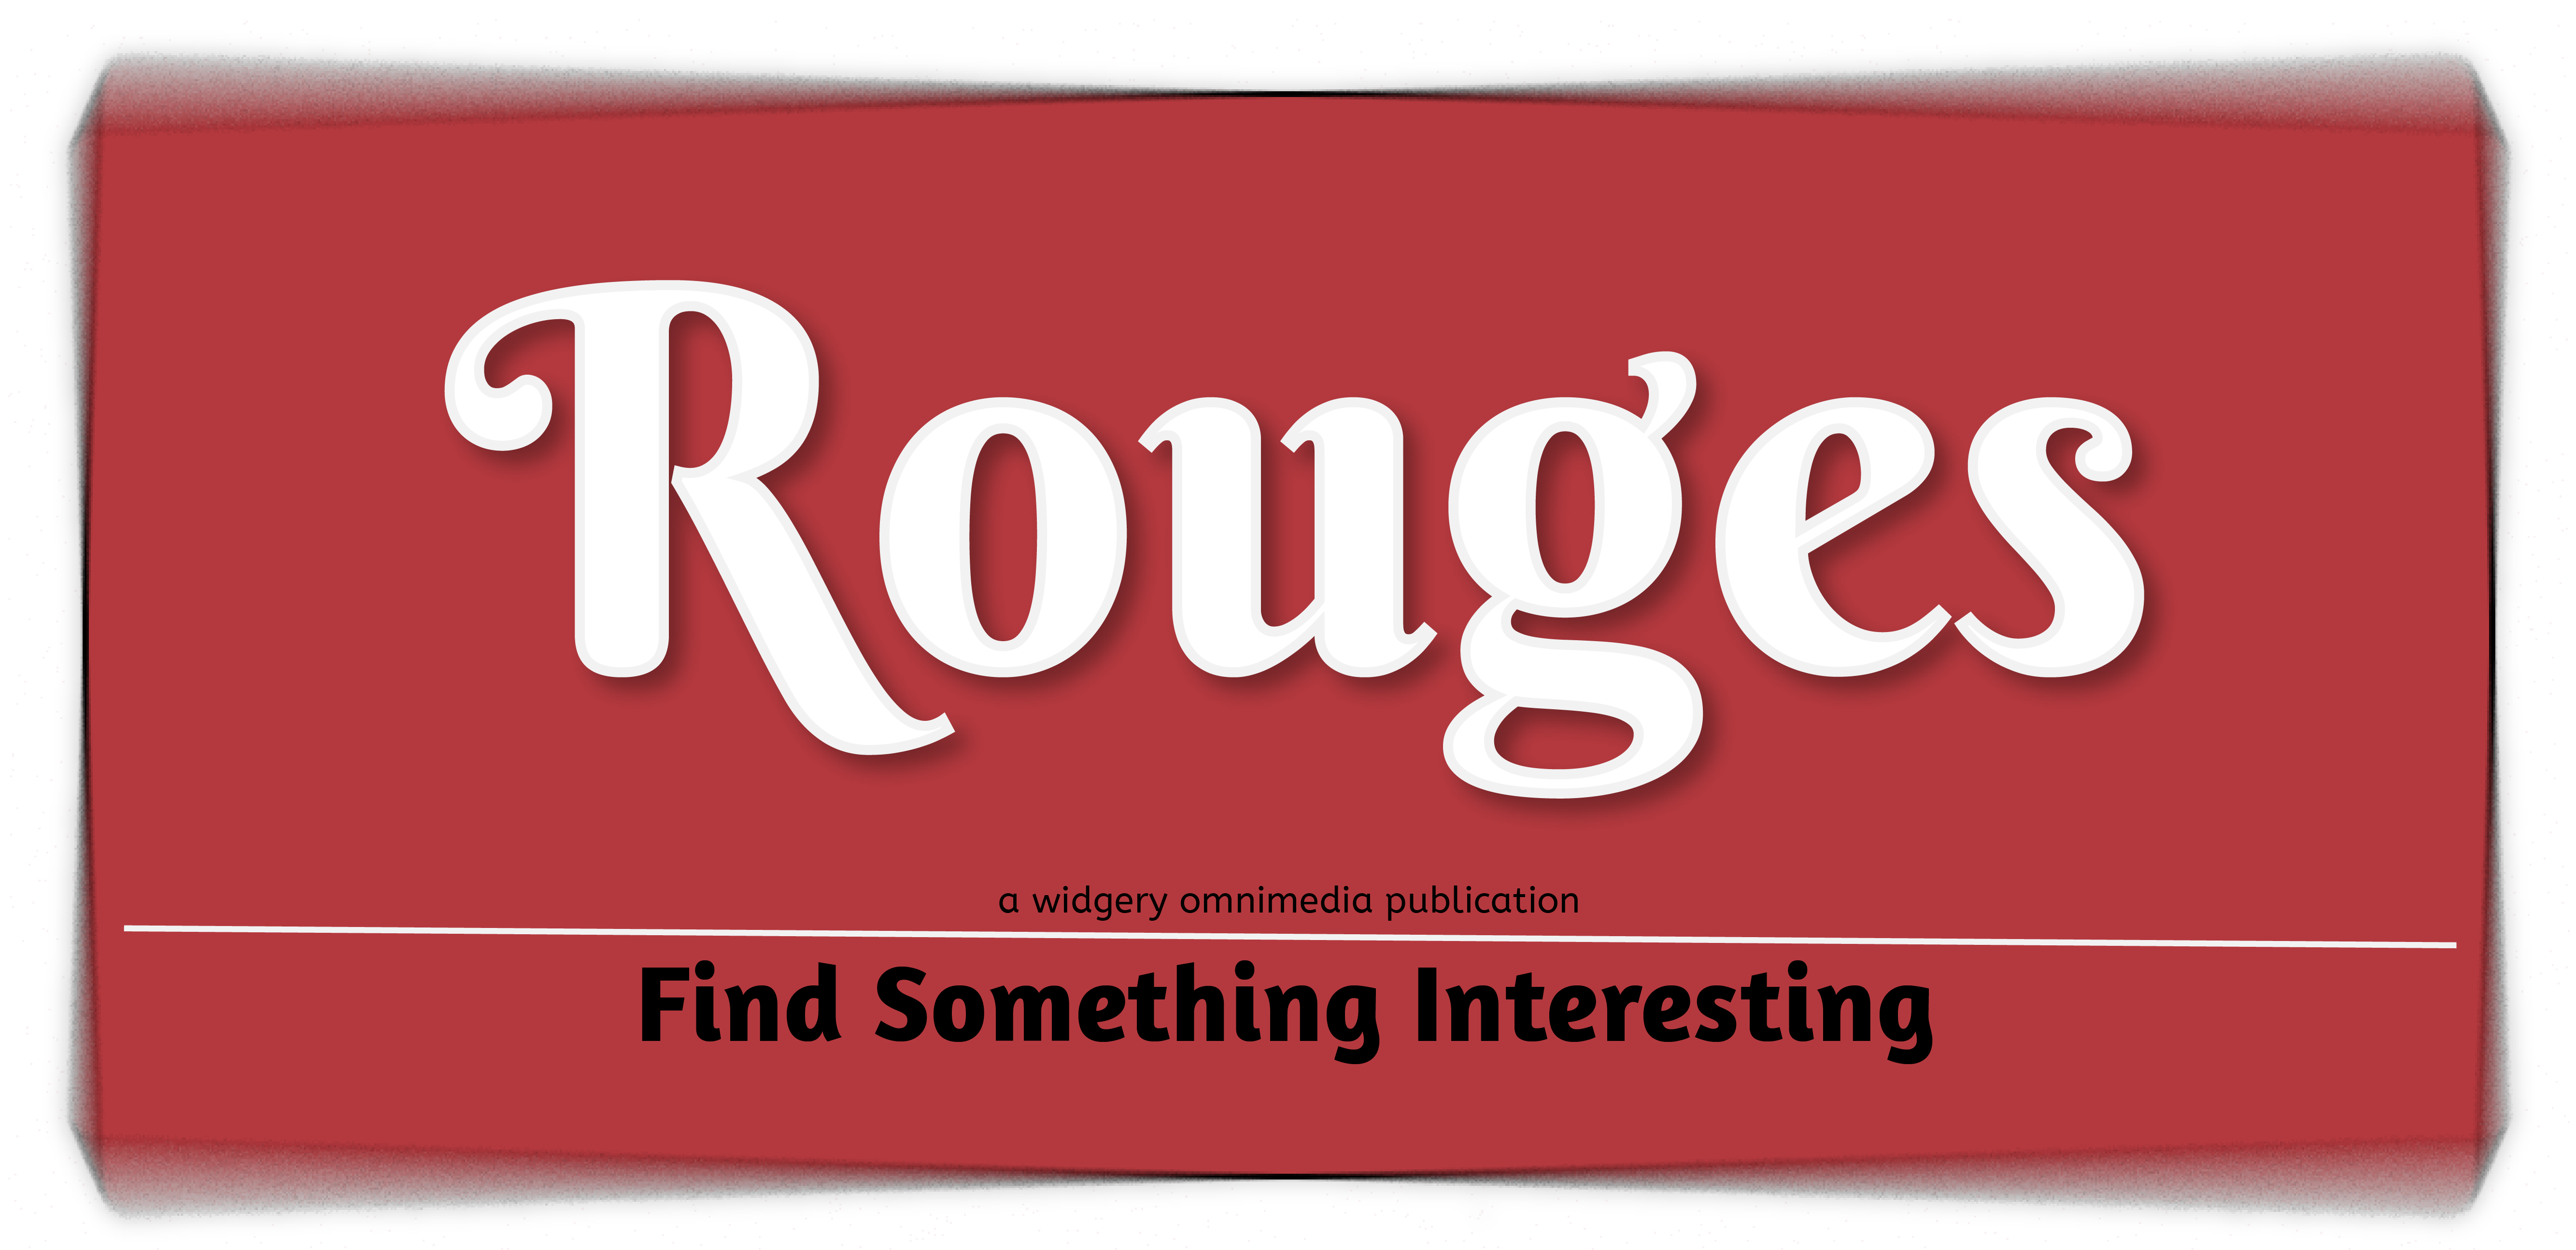 Rouges Magazine Announces Their New Look